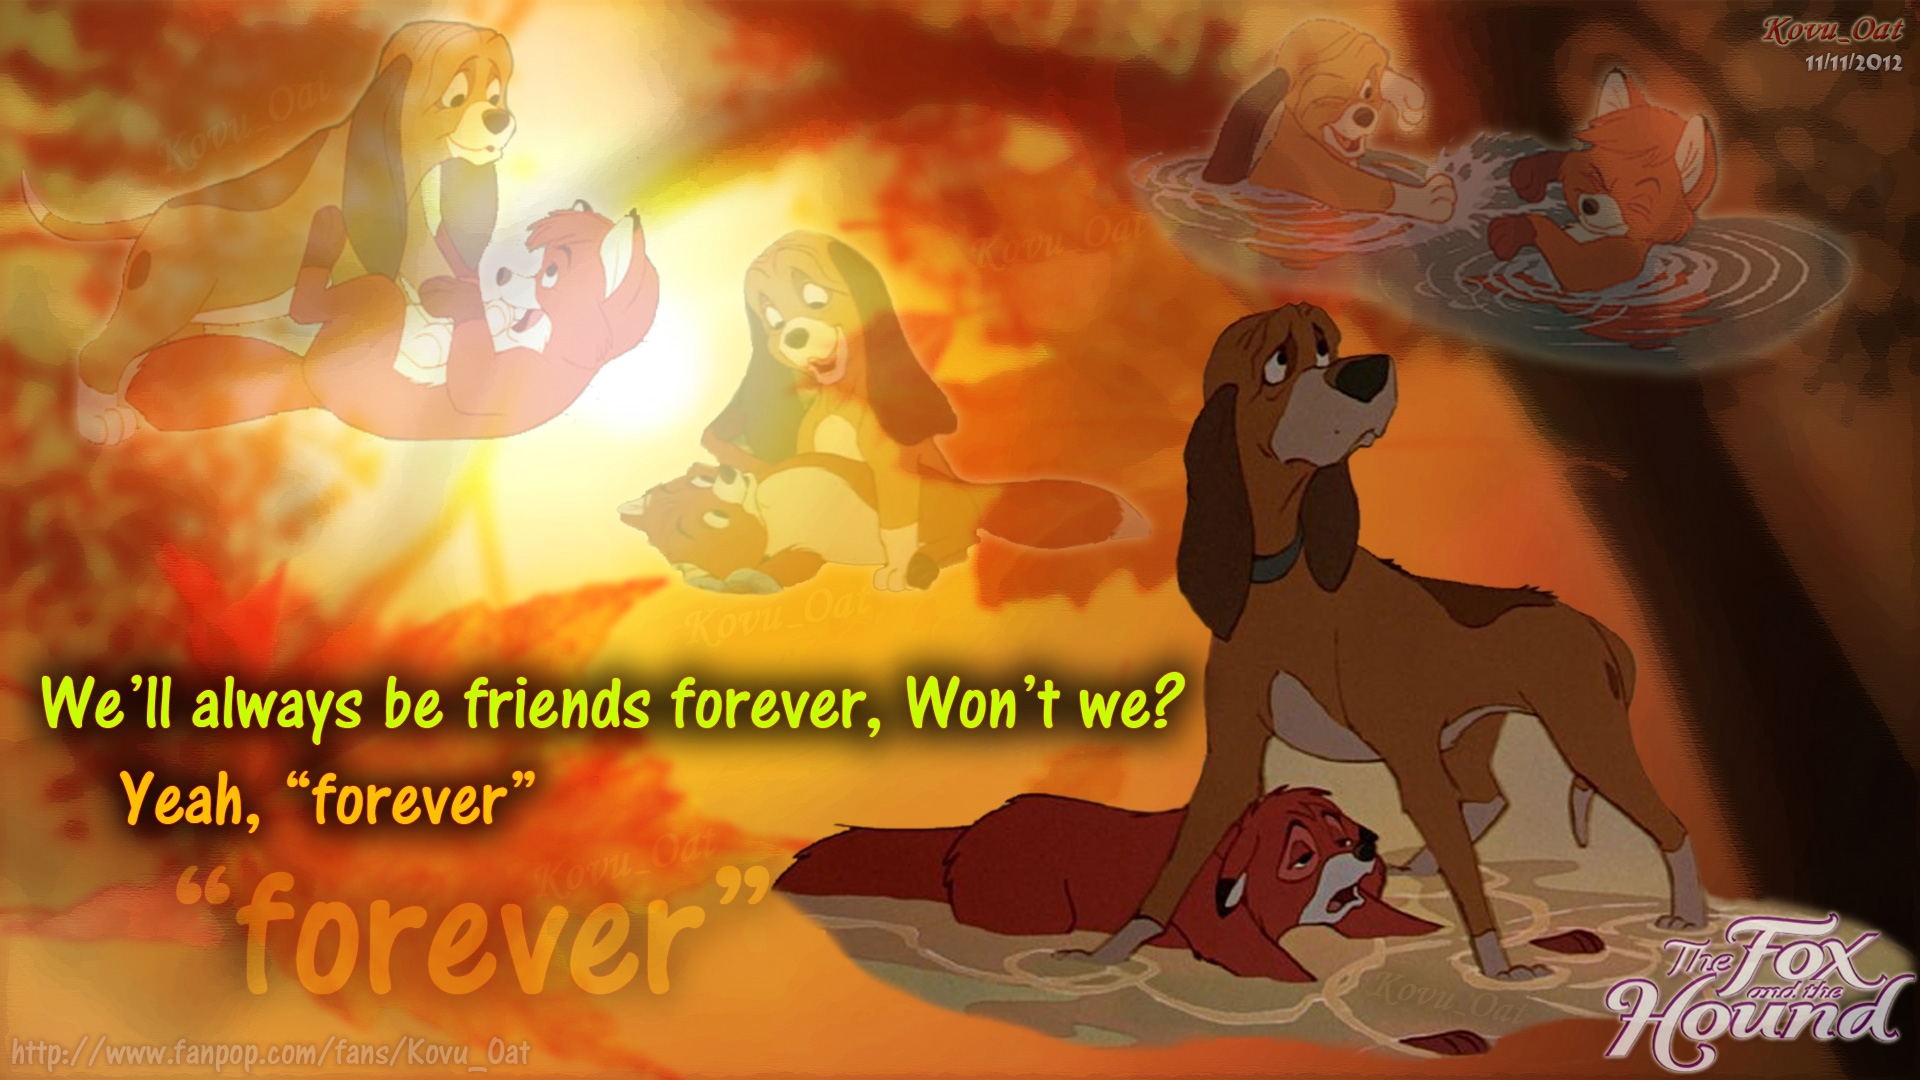 The Fox and the Hound Tod and Copper friend forever wallpaper HD